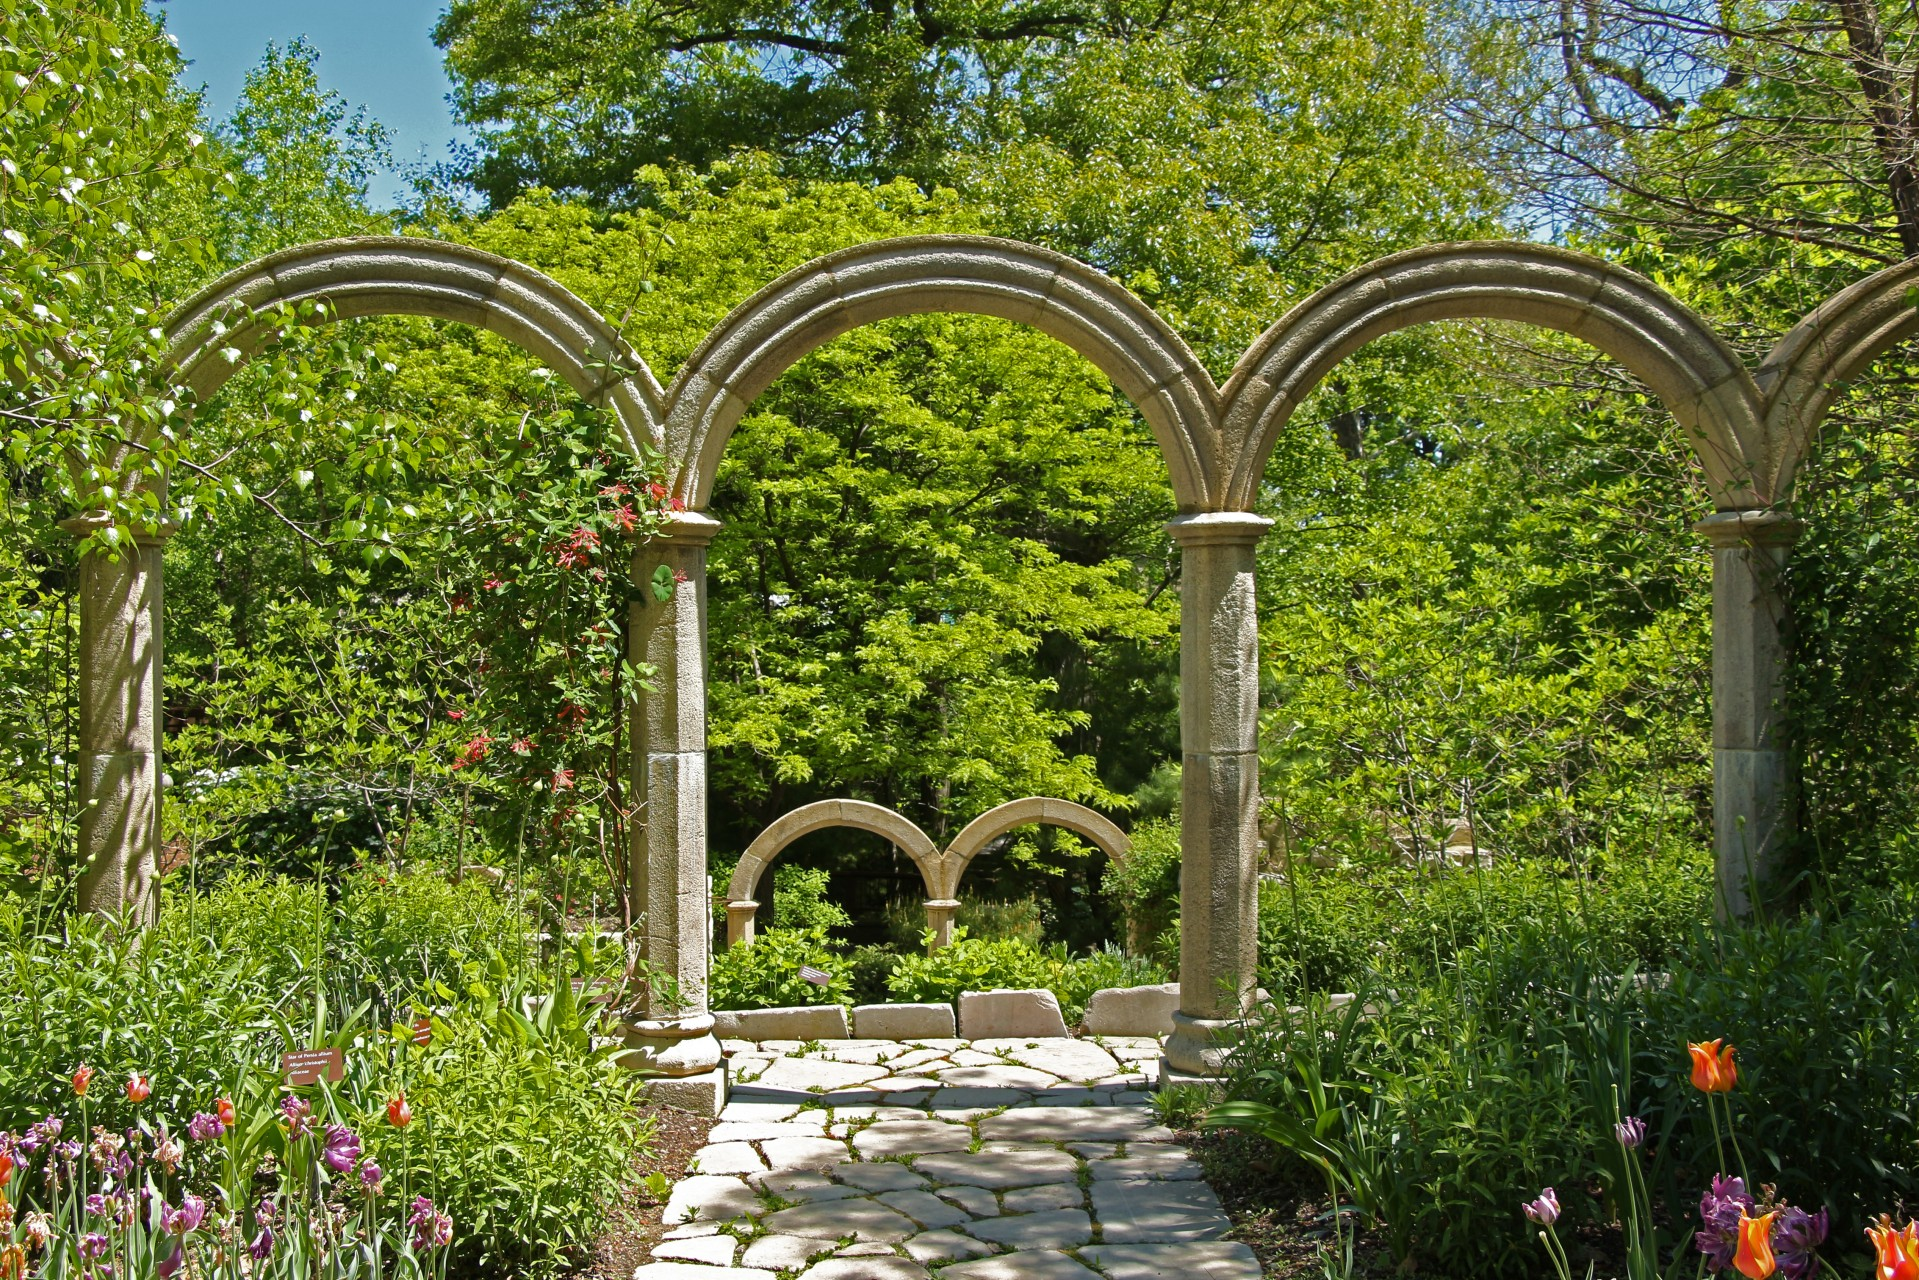 Garden Decor Decorative Arch Stone Arch Free Image From